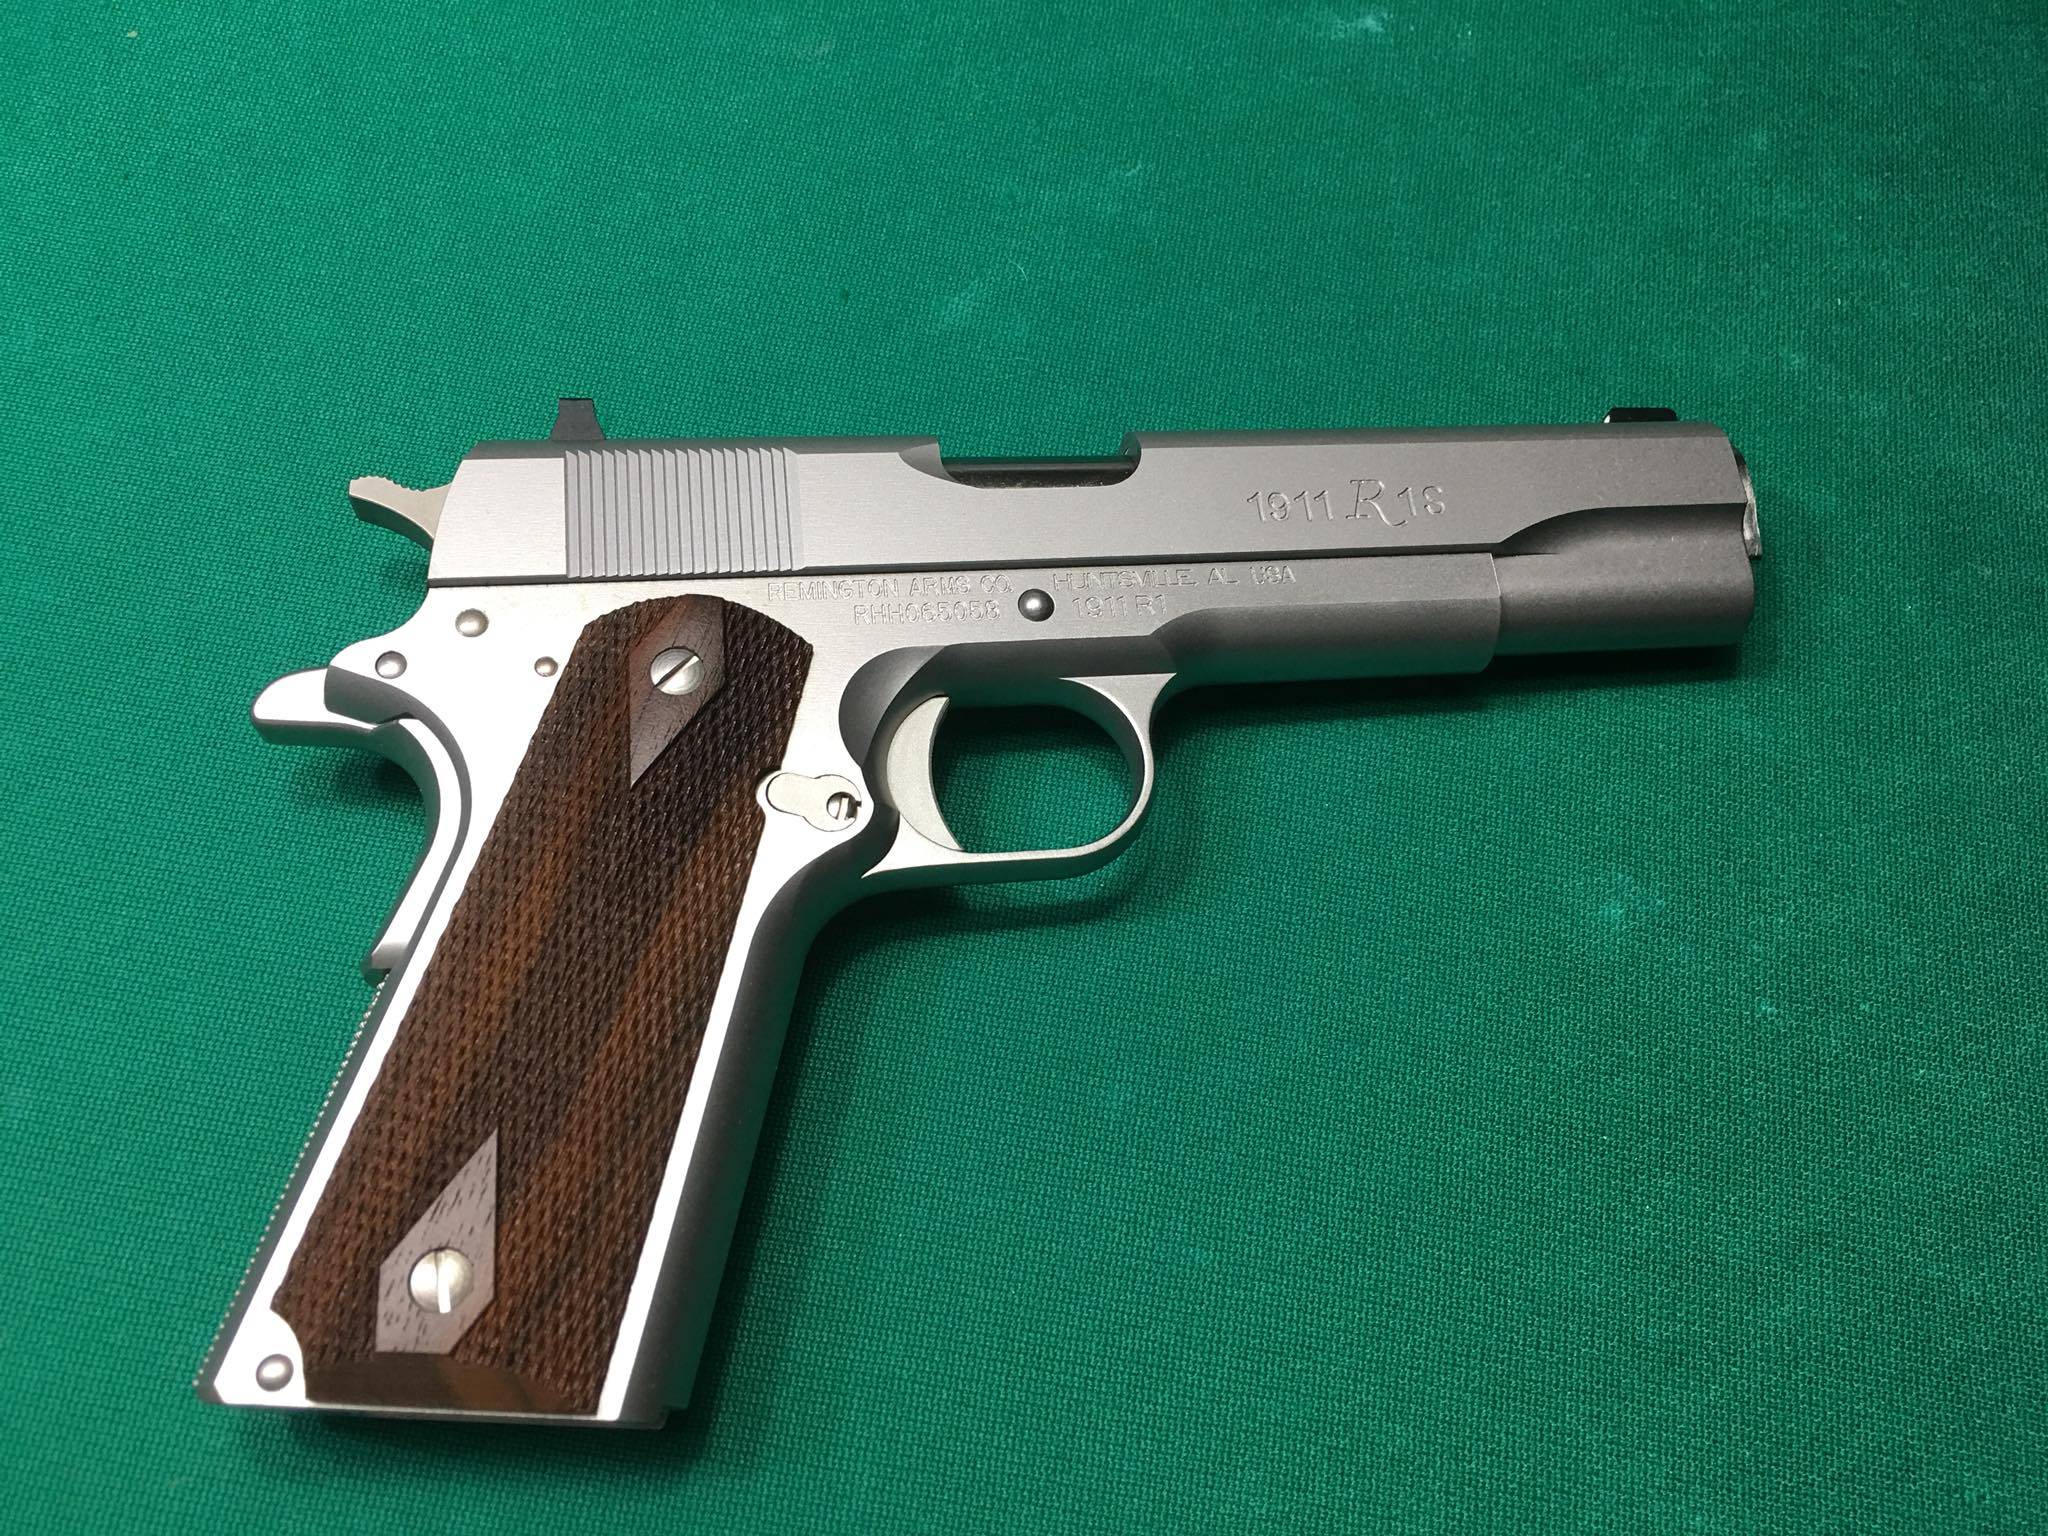 2018remington1911.jpg